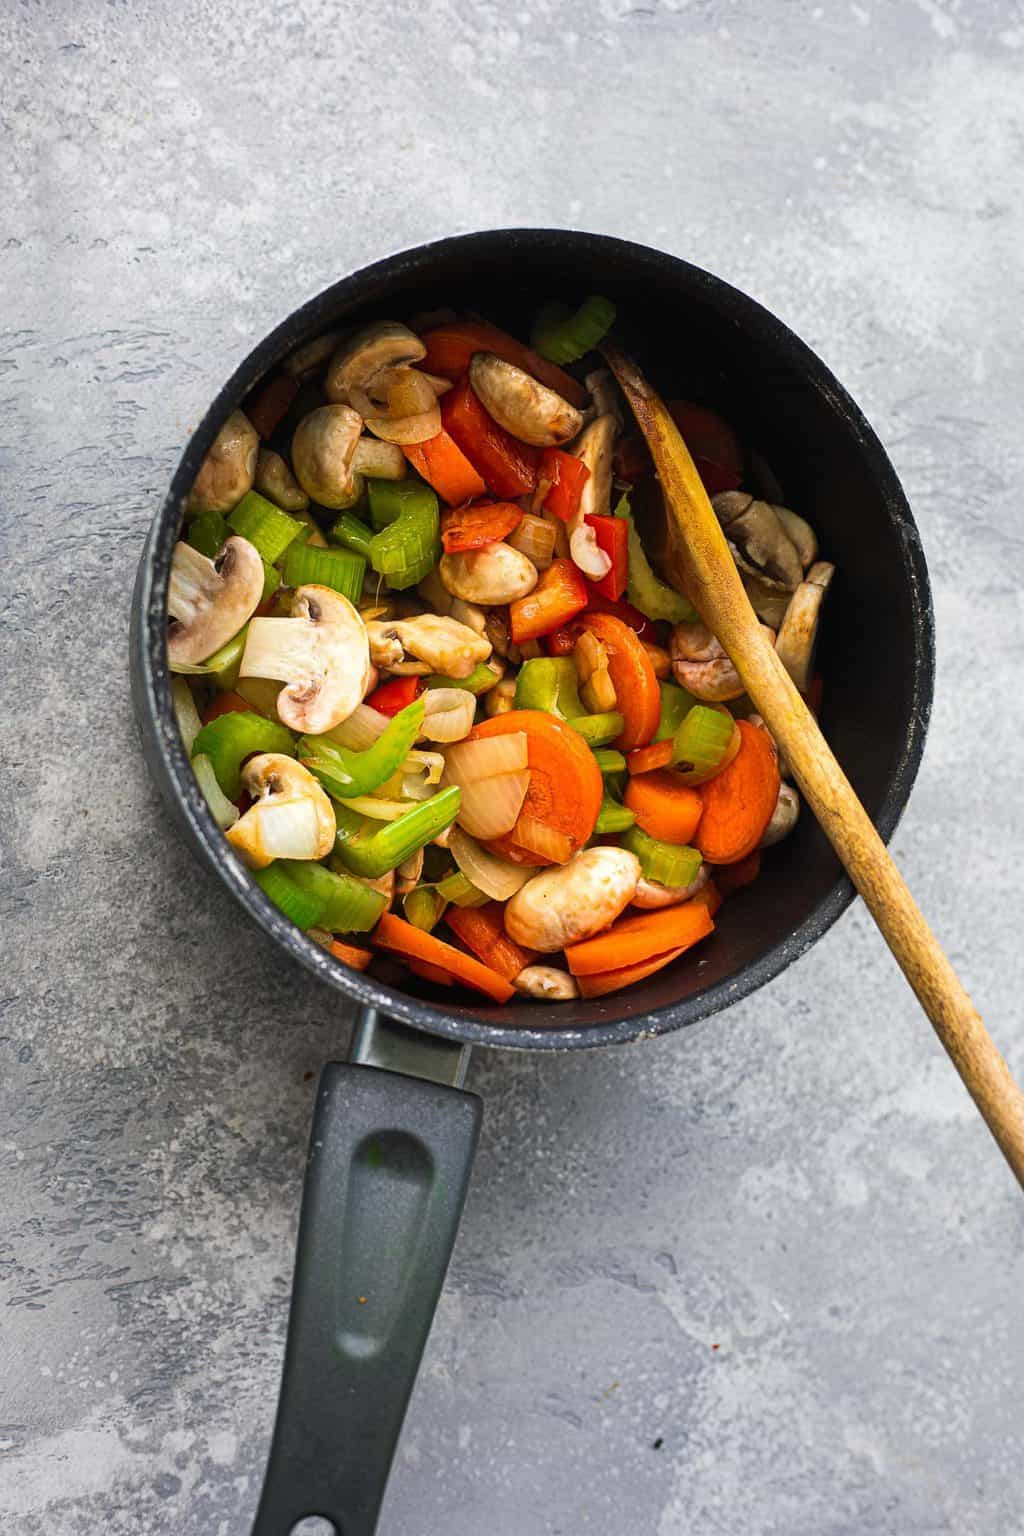 Mushrooms and vegetables in a saucepan